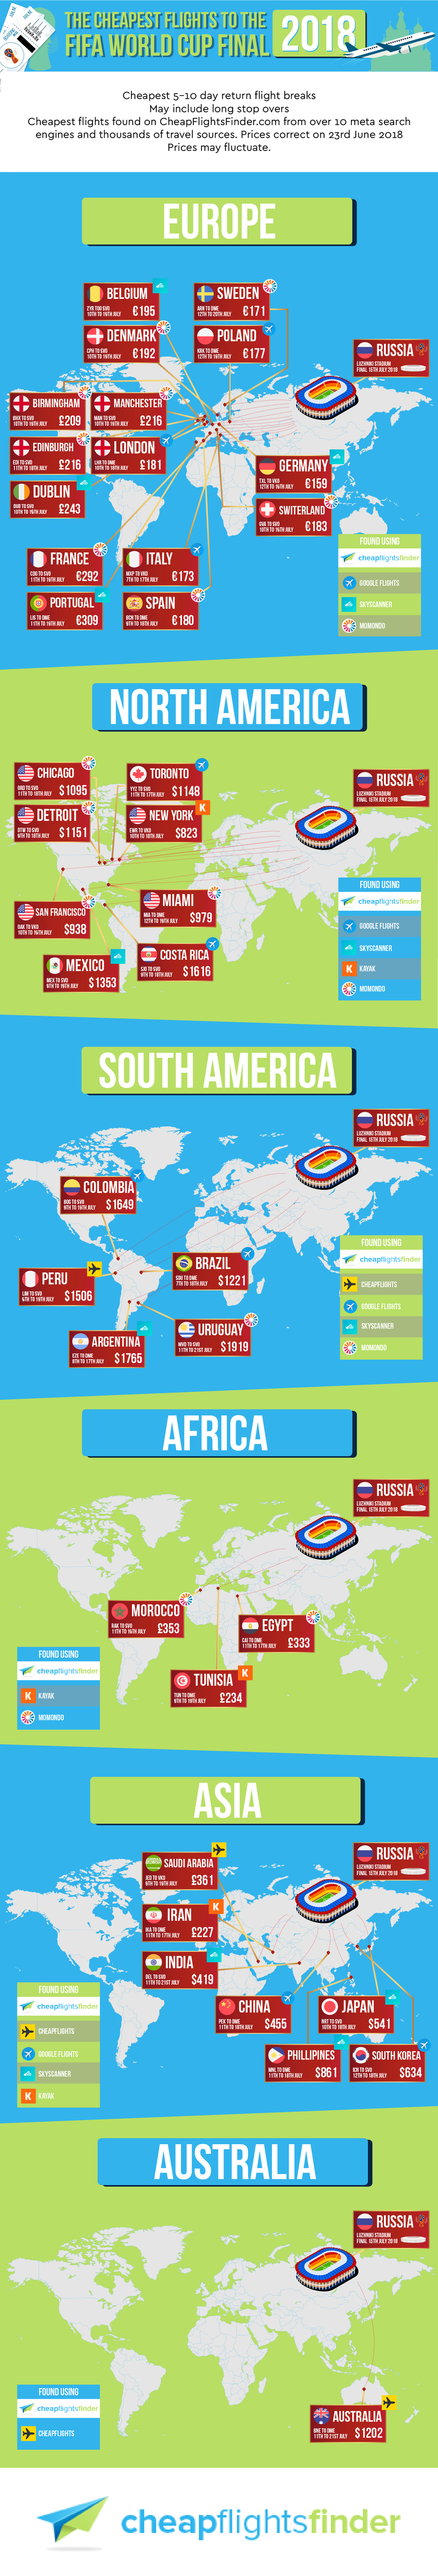 The Cheapest Flights to the Fifa World Cup Final